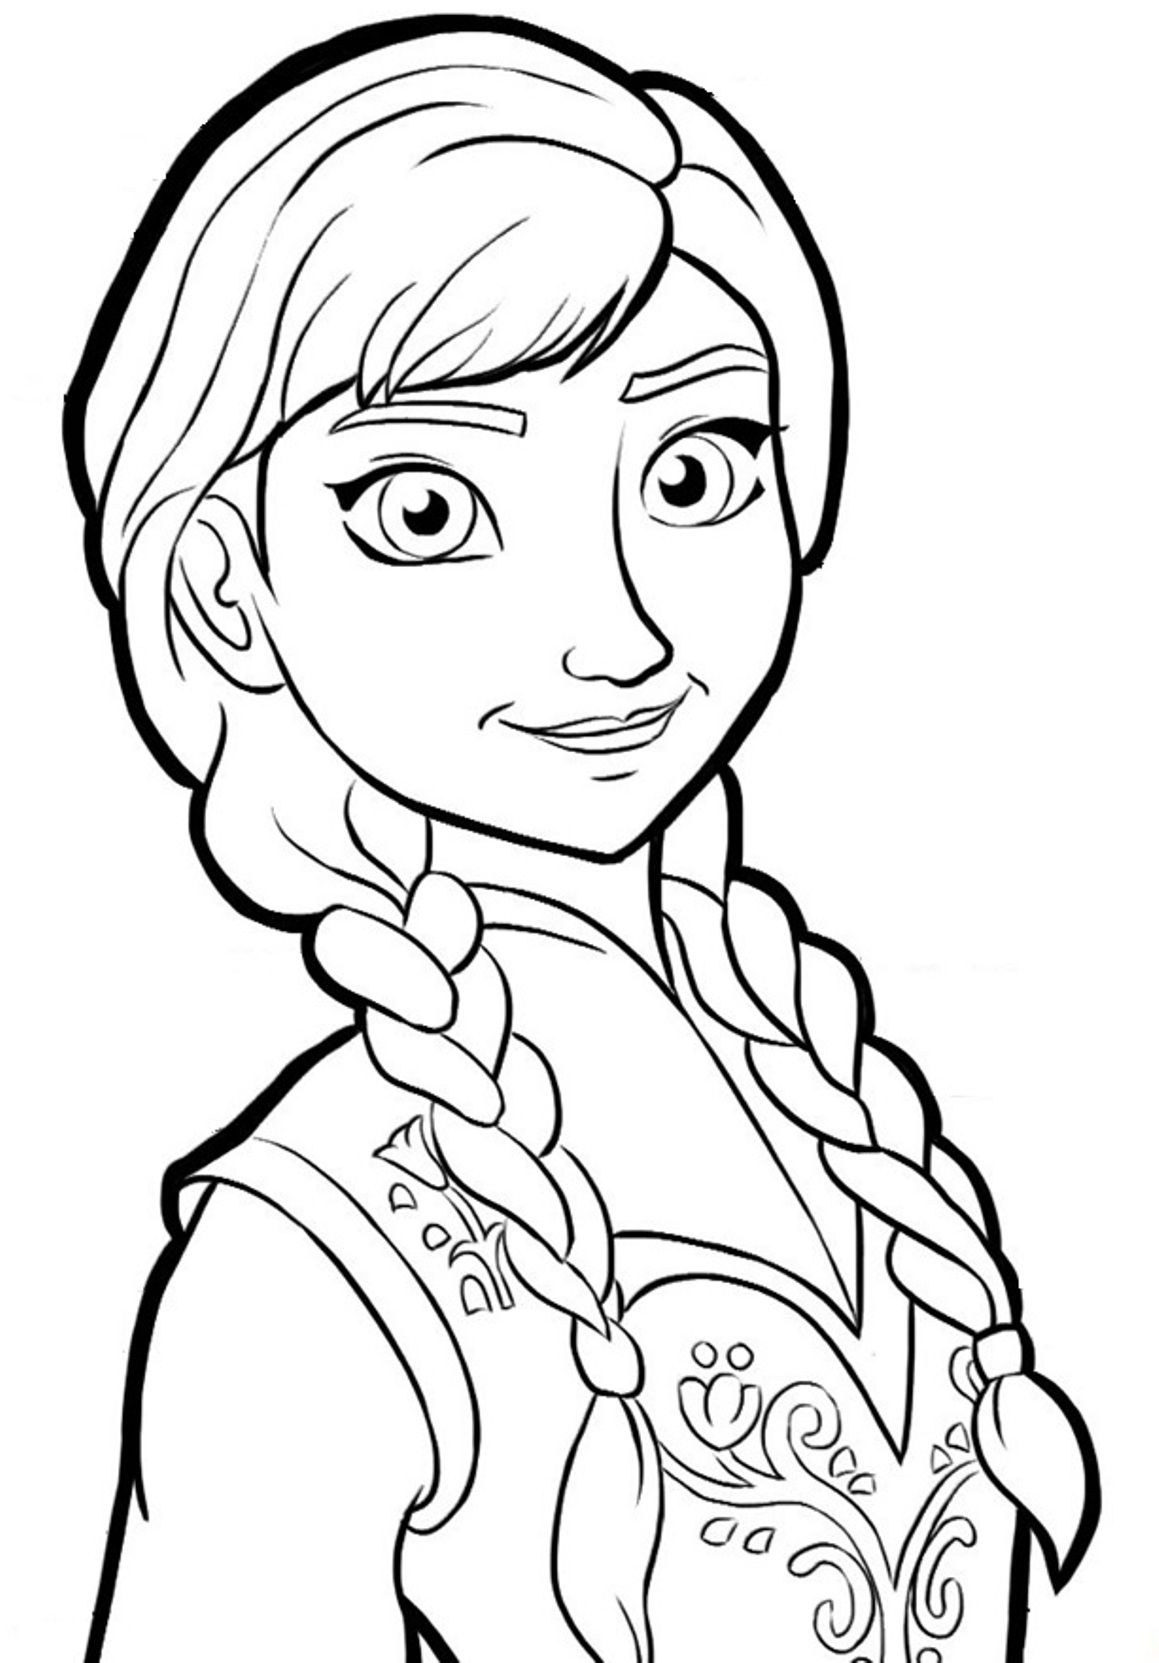 Disney princess anna coloring pages